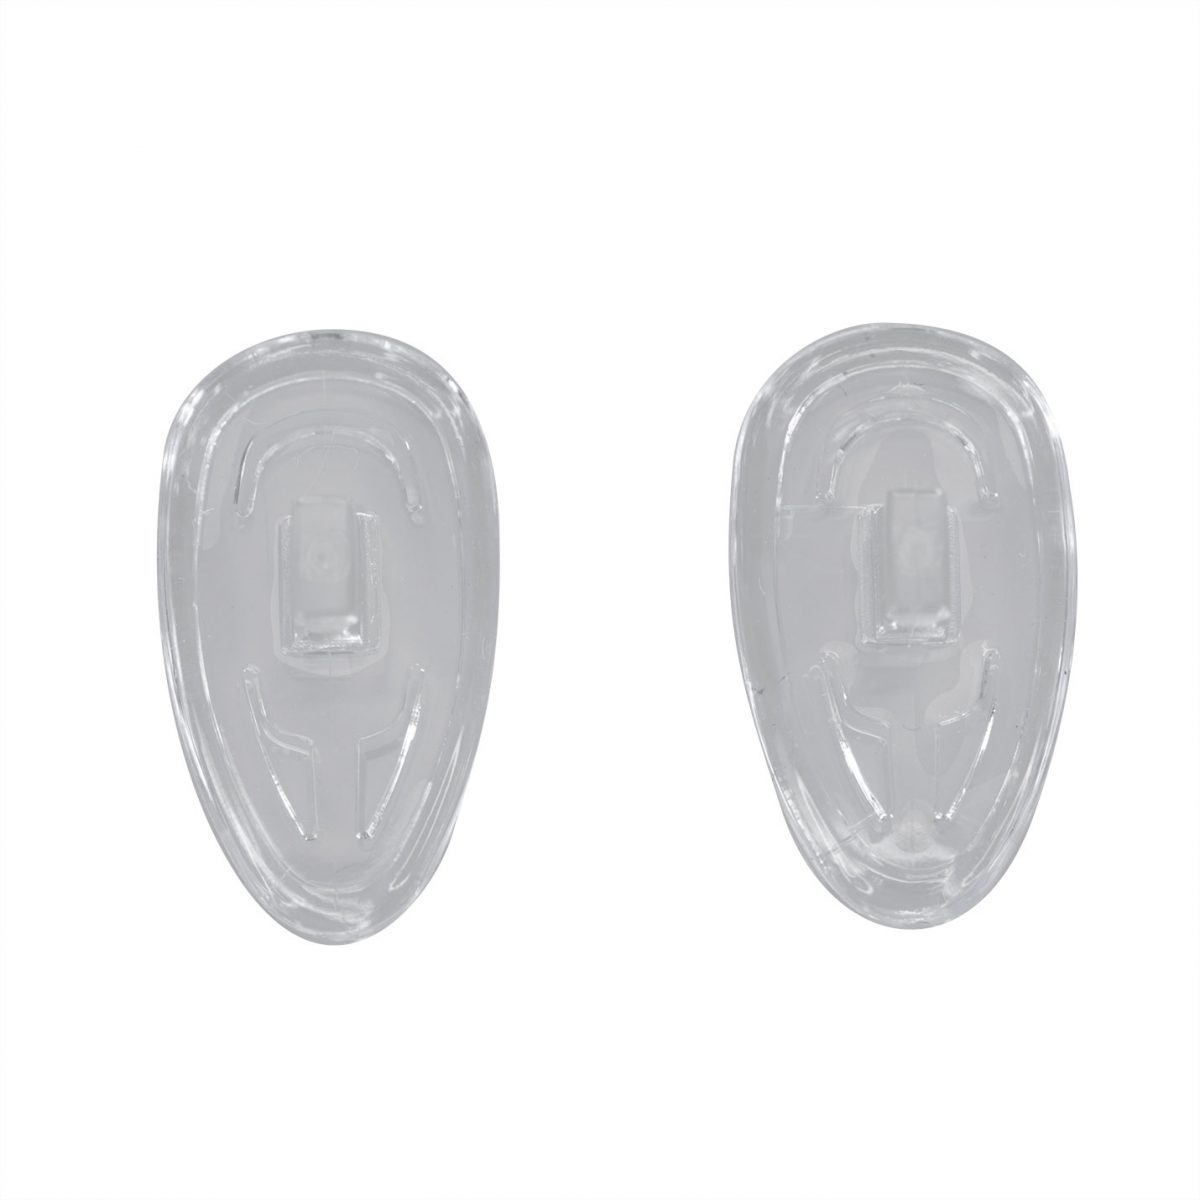 symmetrical-Silicone-press-on-nose-pads-16mm